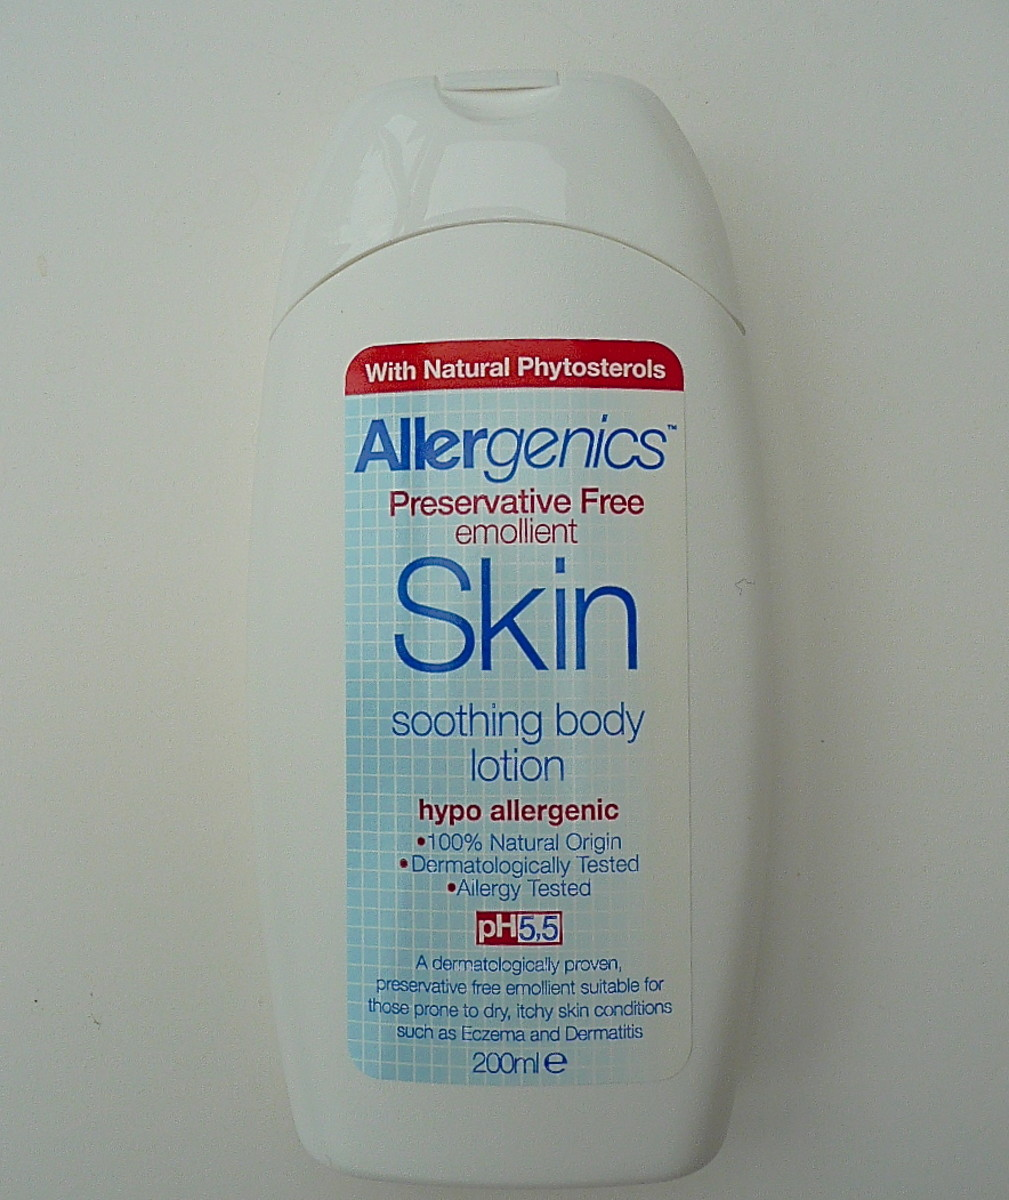 Allergenics soothing body lotion is the best.